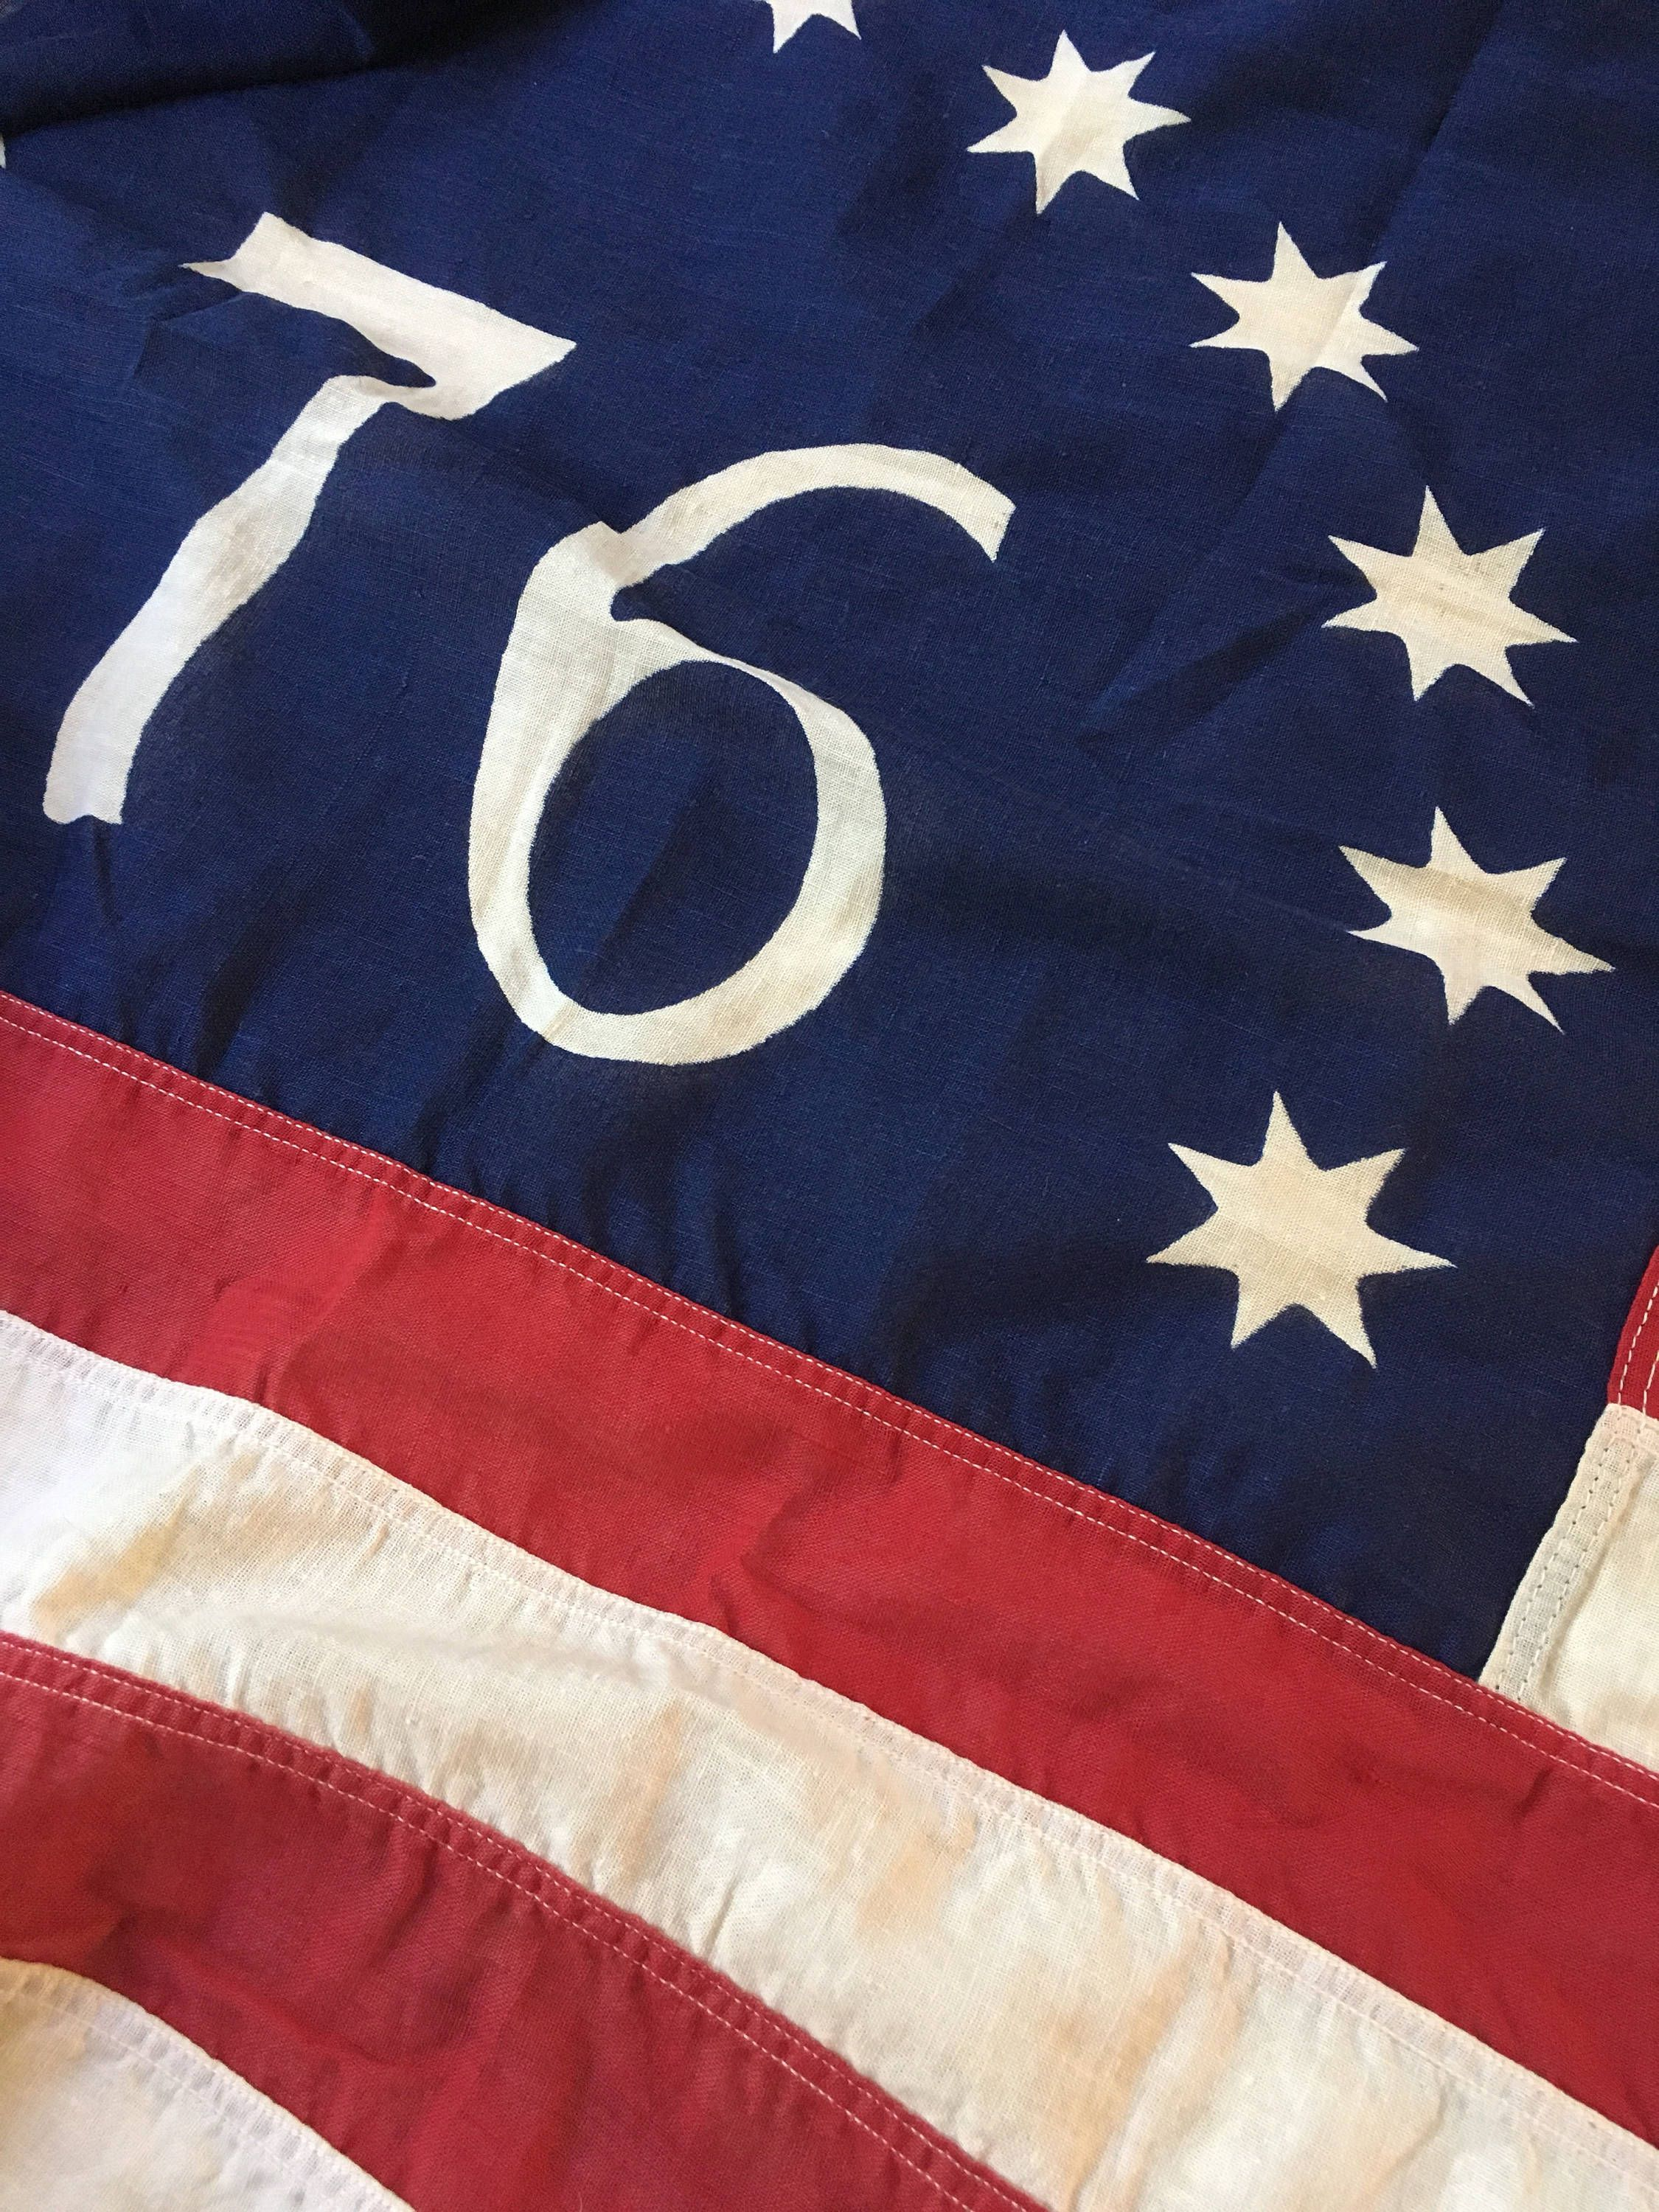 Rare Faded Vintage 76 Bicentennial Valley Forge American Flag Flag Company Vintage American Flag